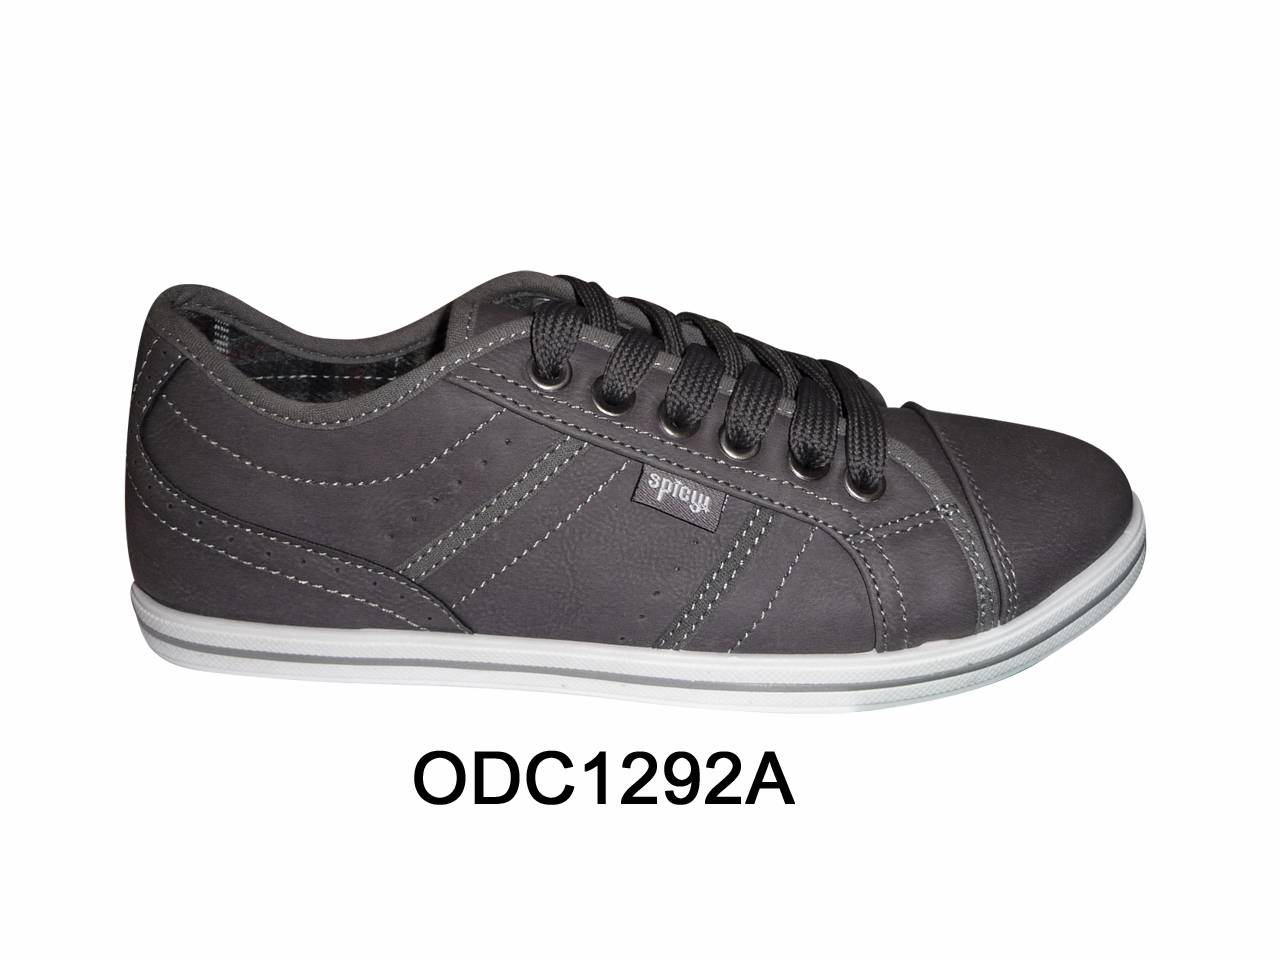 sports shoes casual shoes